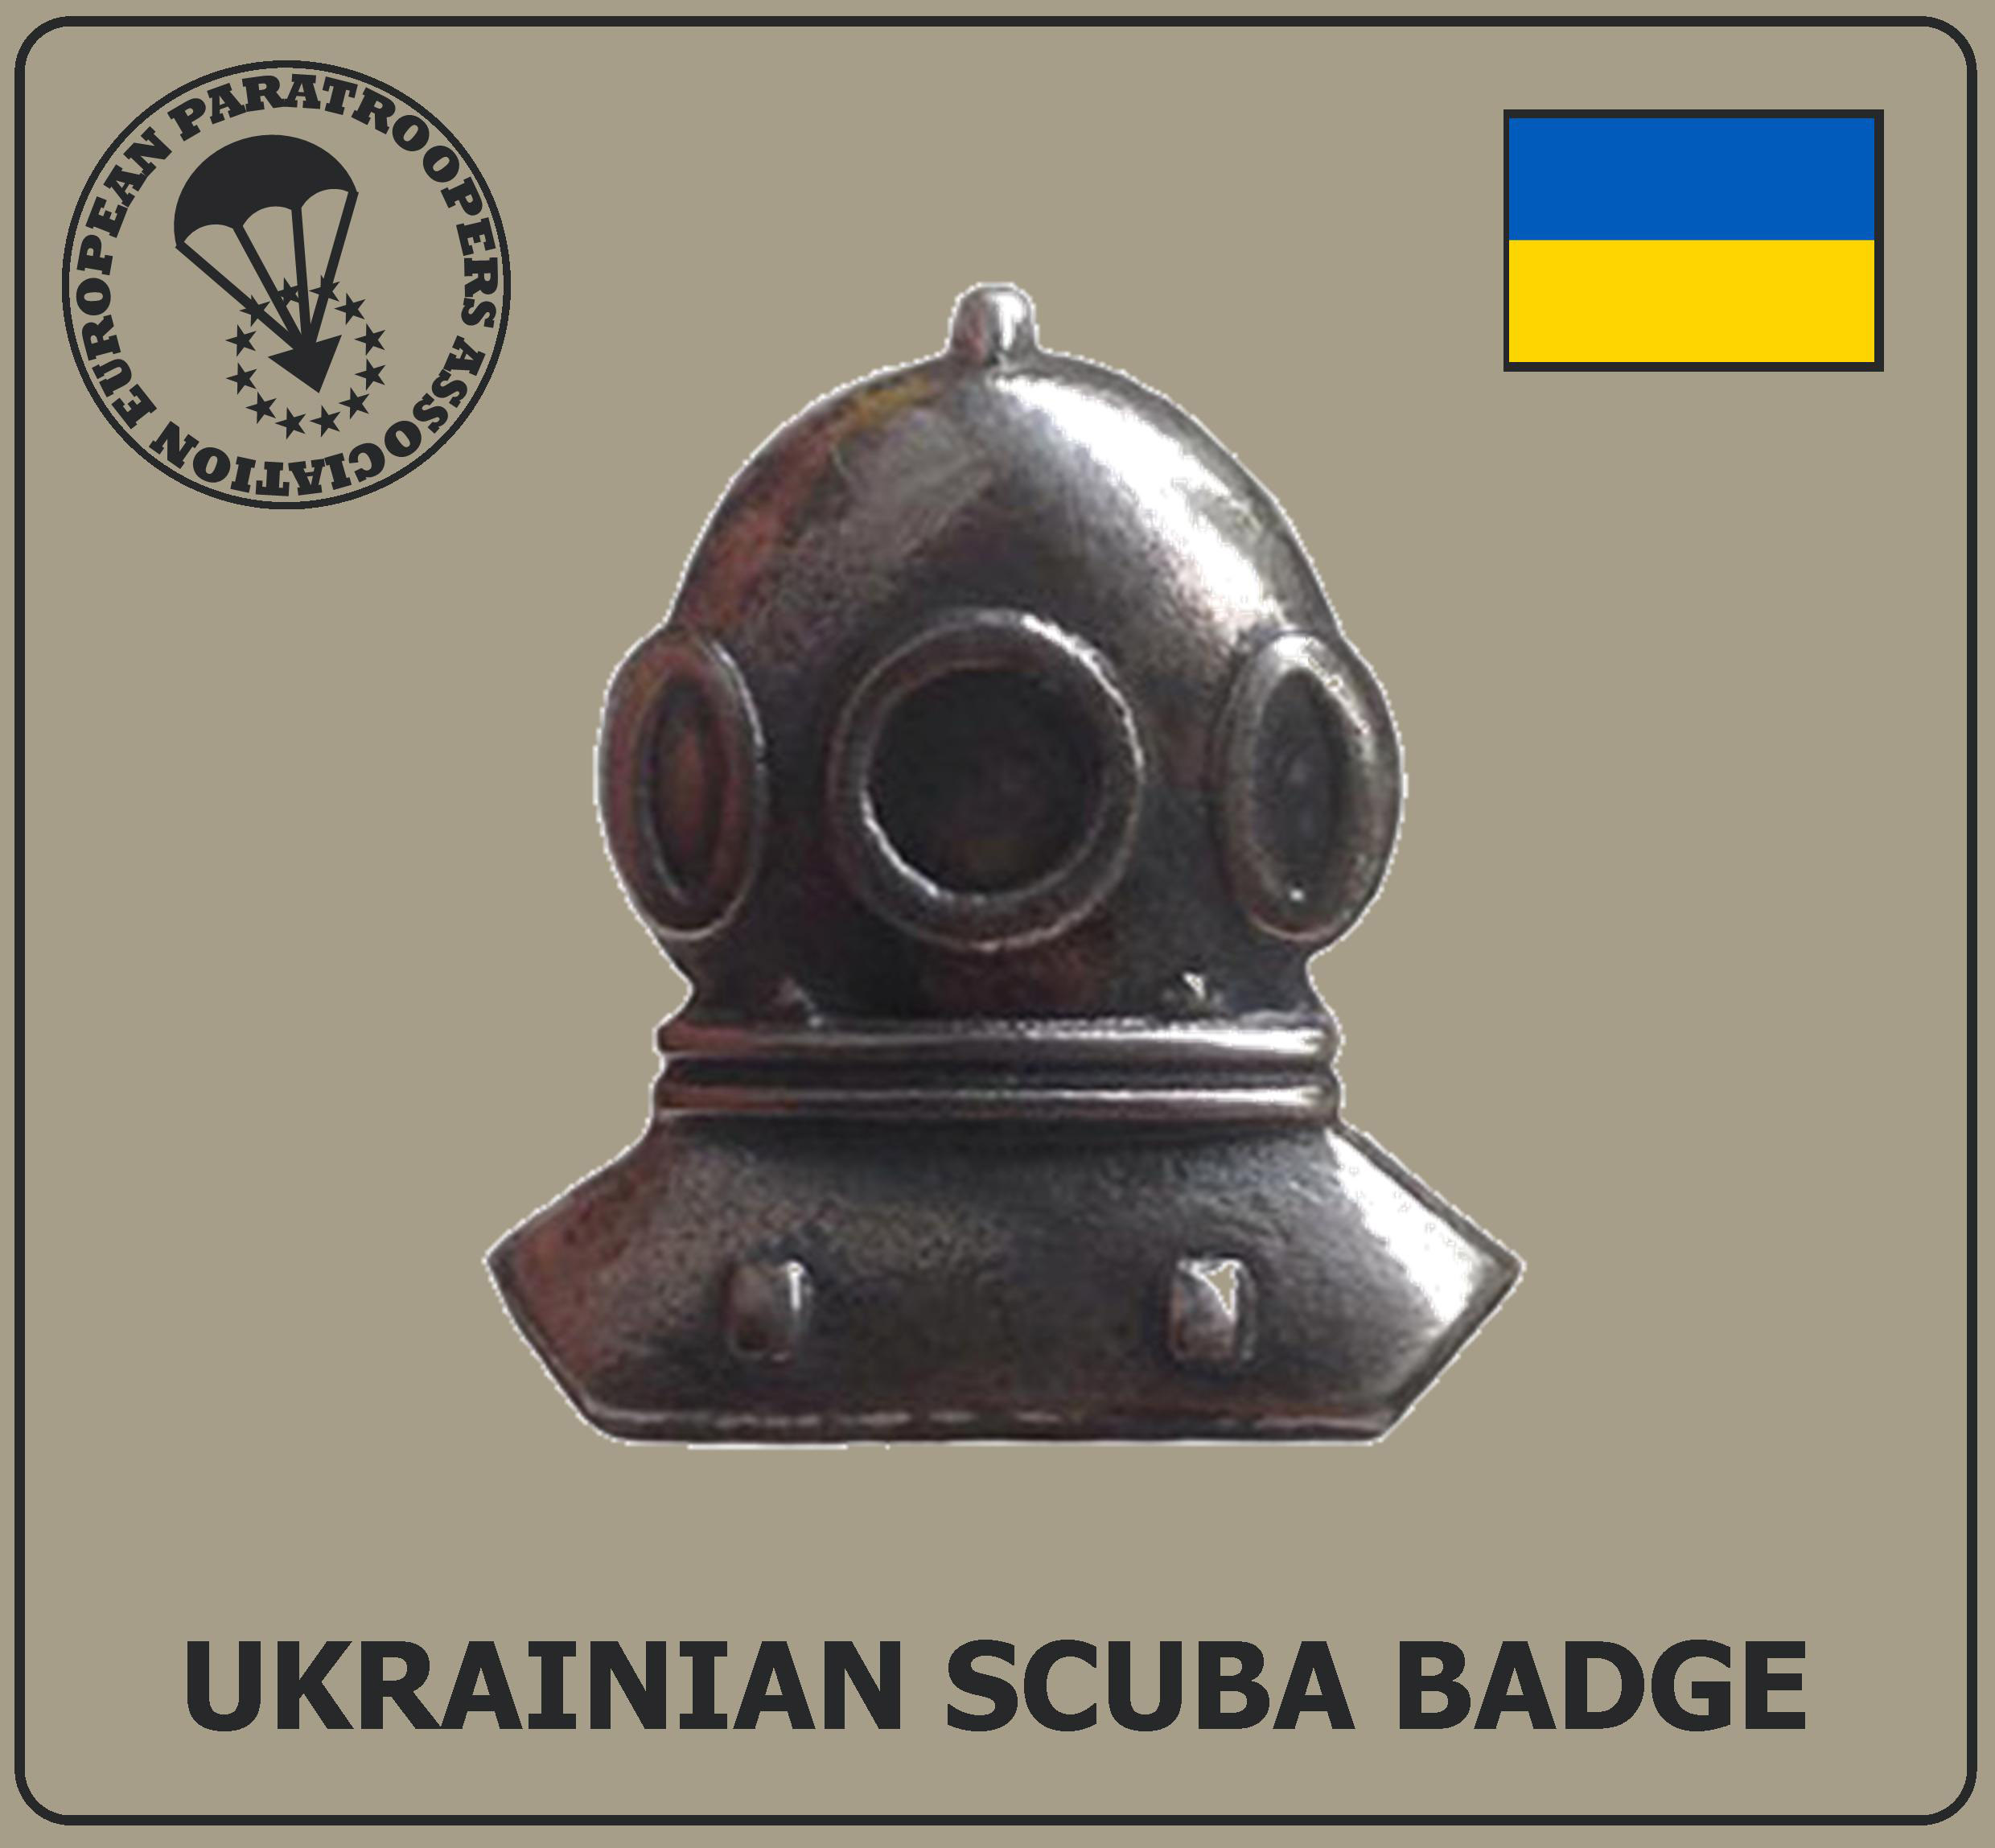 UKRAINIAN SCUBA DIVER BADGE